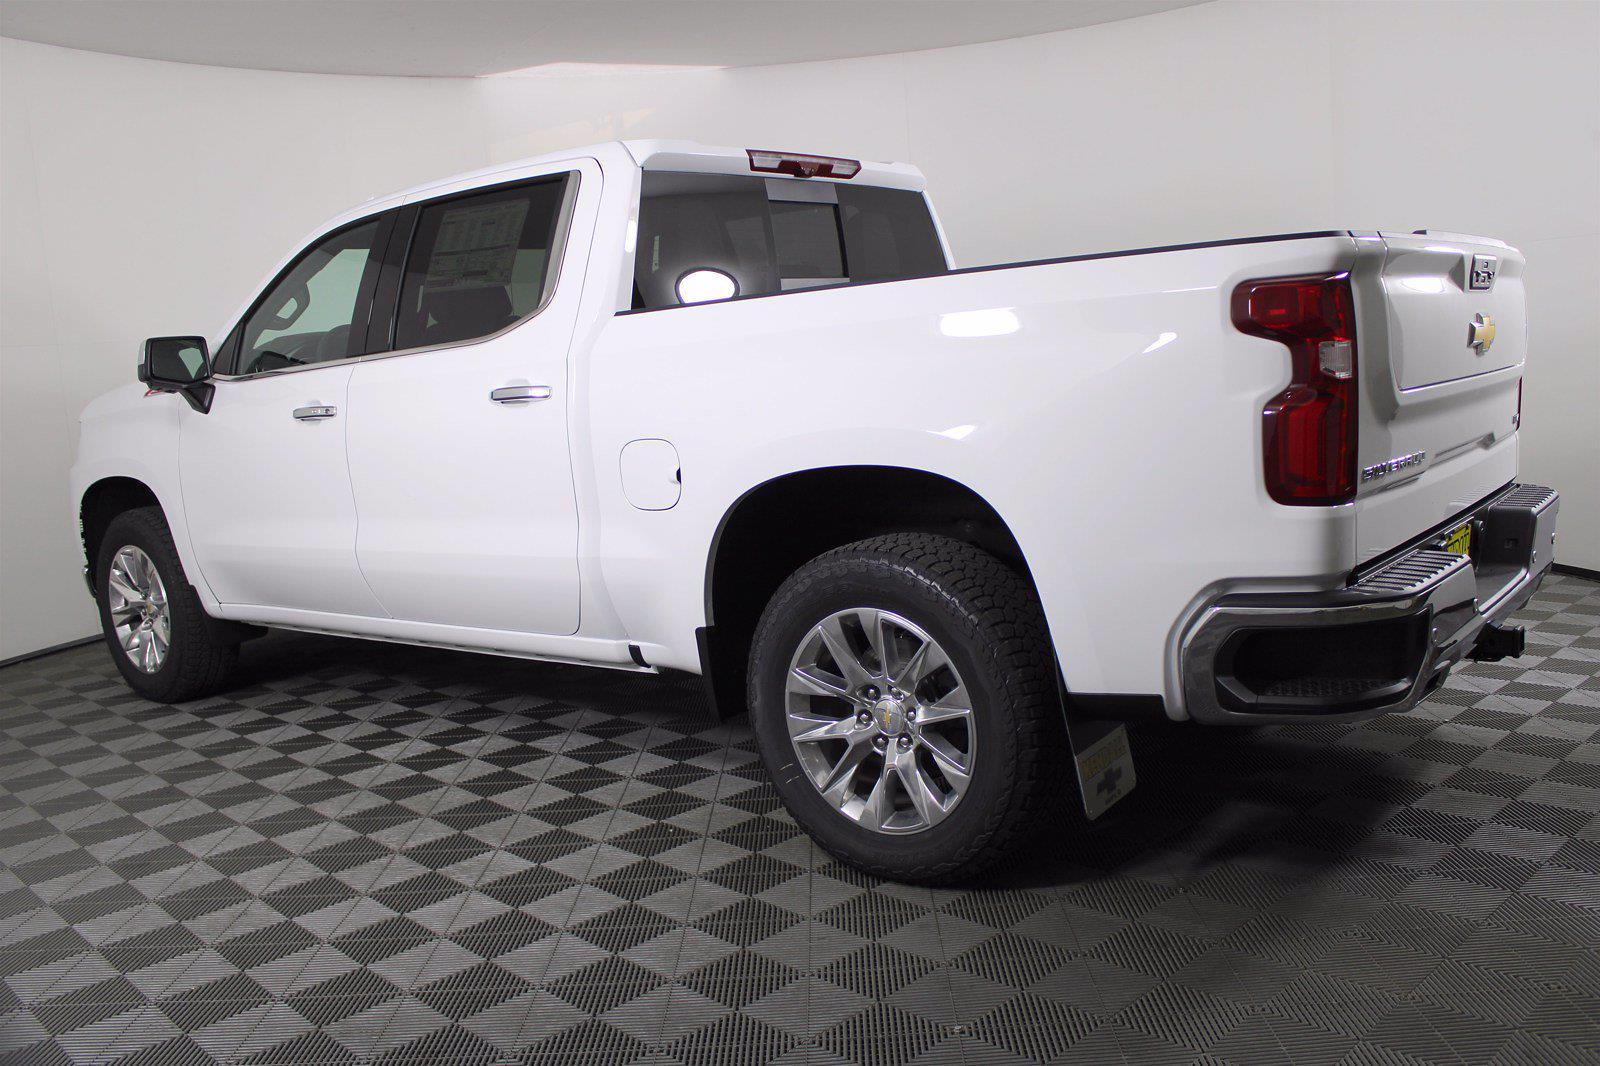 2021 Chevrolet Silverado 1500 Crew Cab 4x4, Pickup #D110856 - photo 2